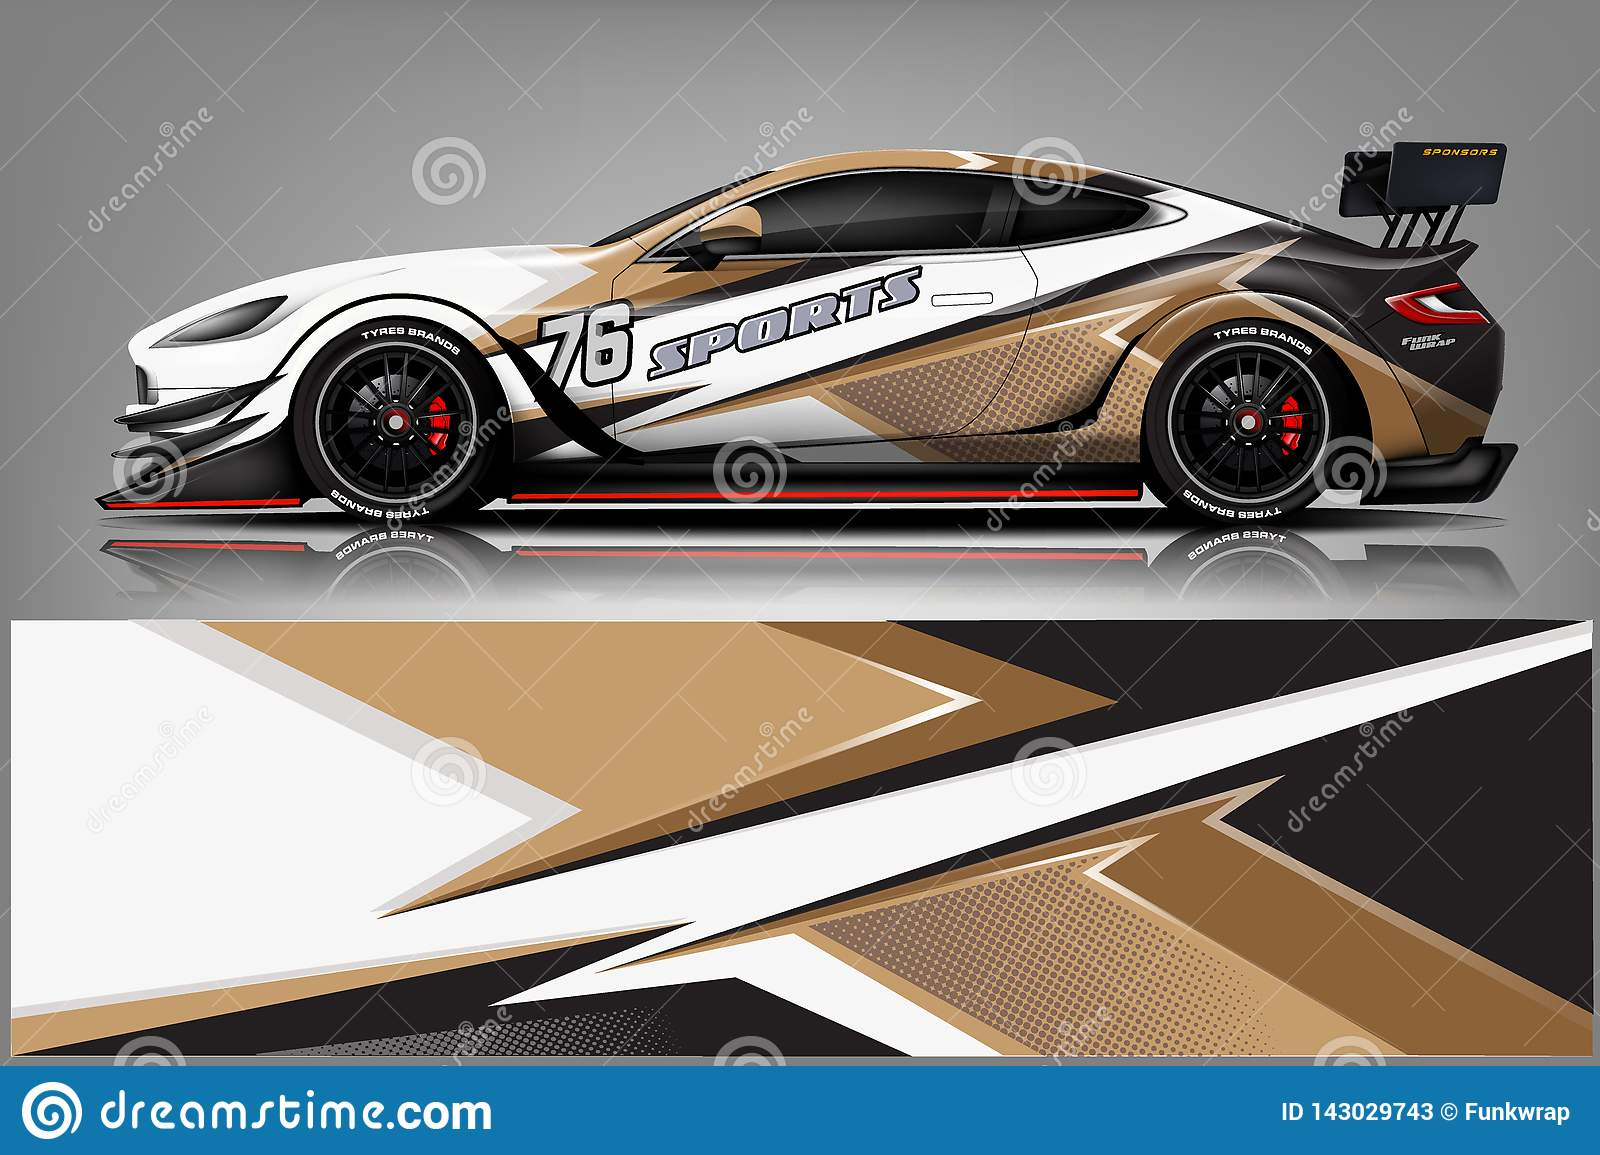 Car decal wrap design vector. Graphic abstract stripe racing background kit designs for vehicle, race car, rally, adventure and li